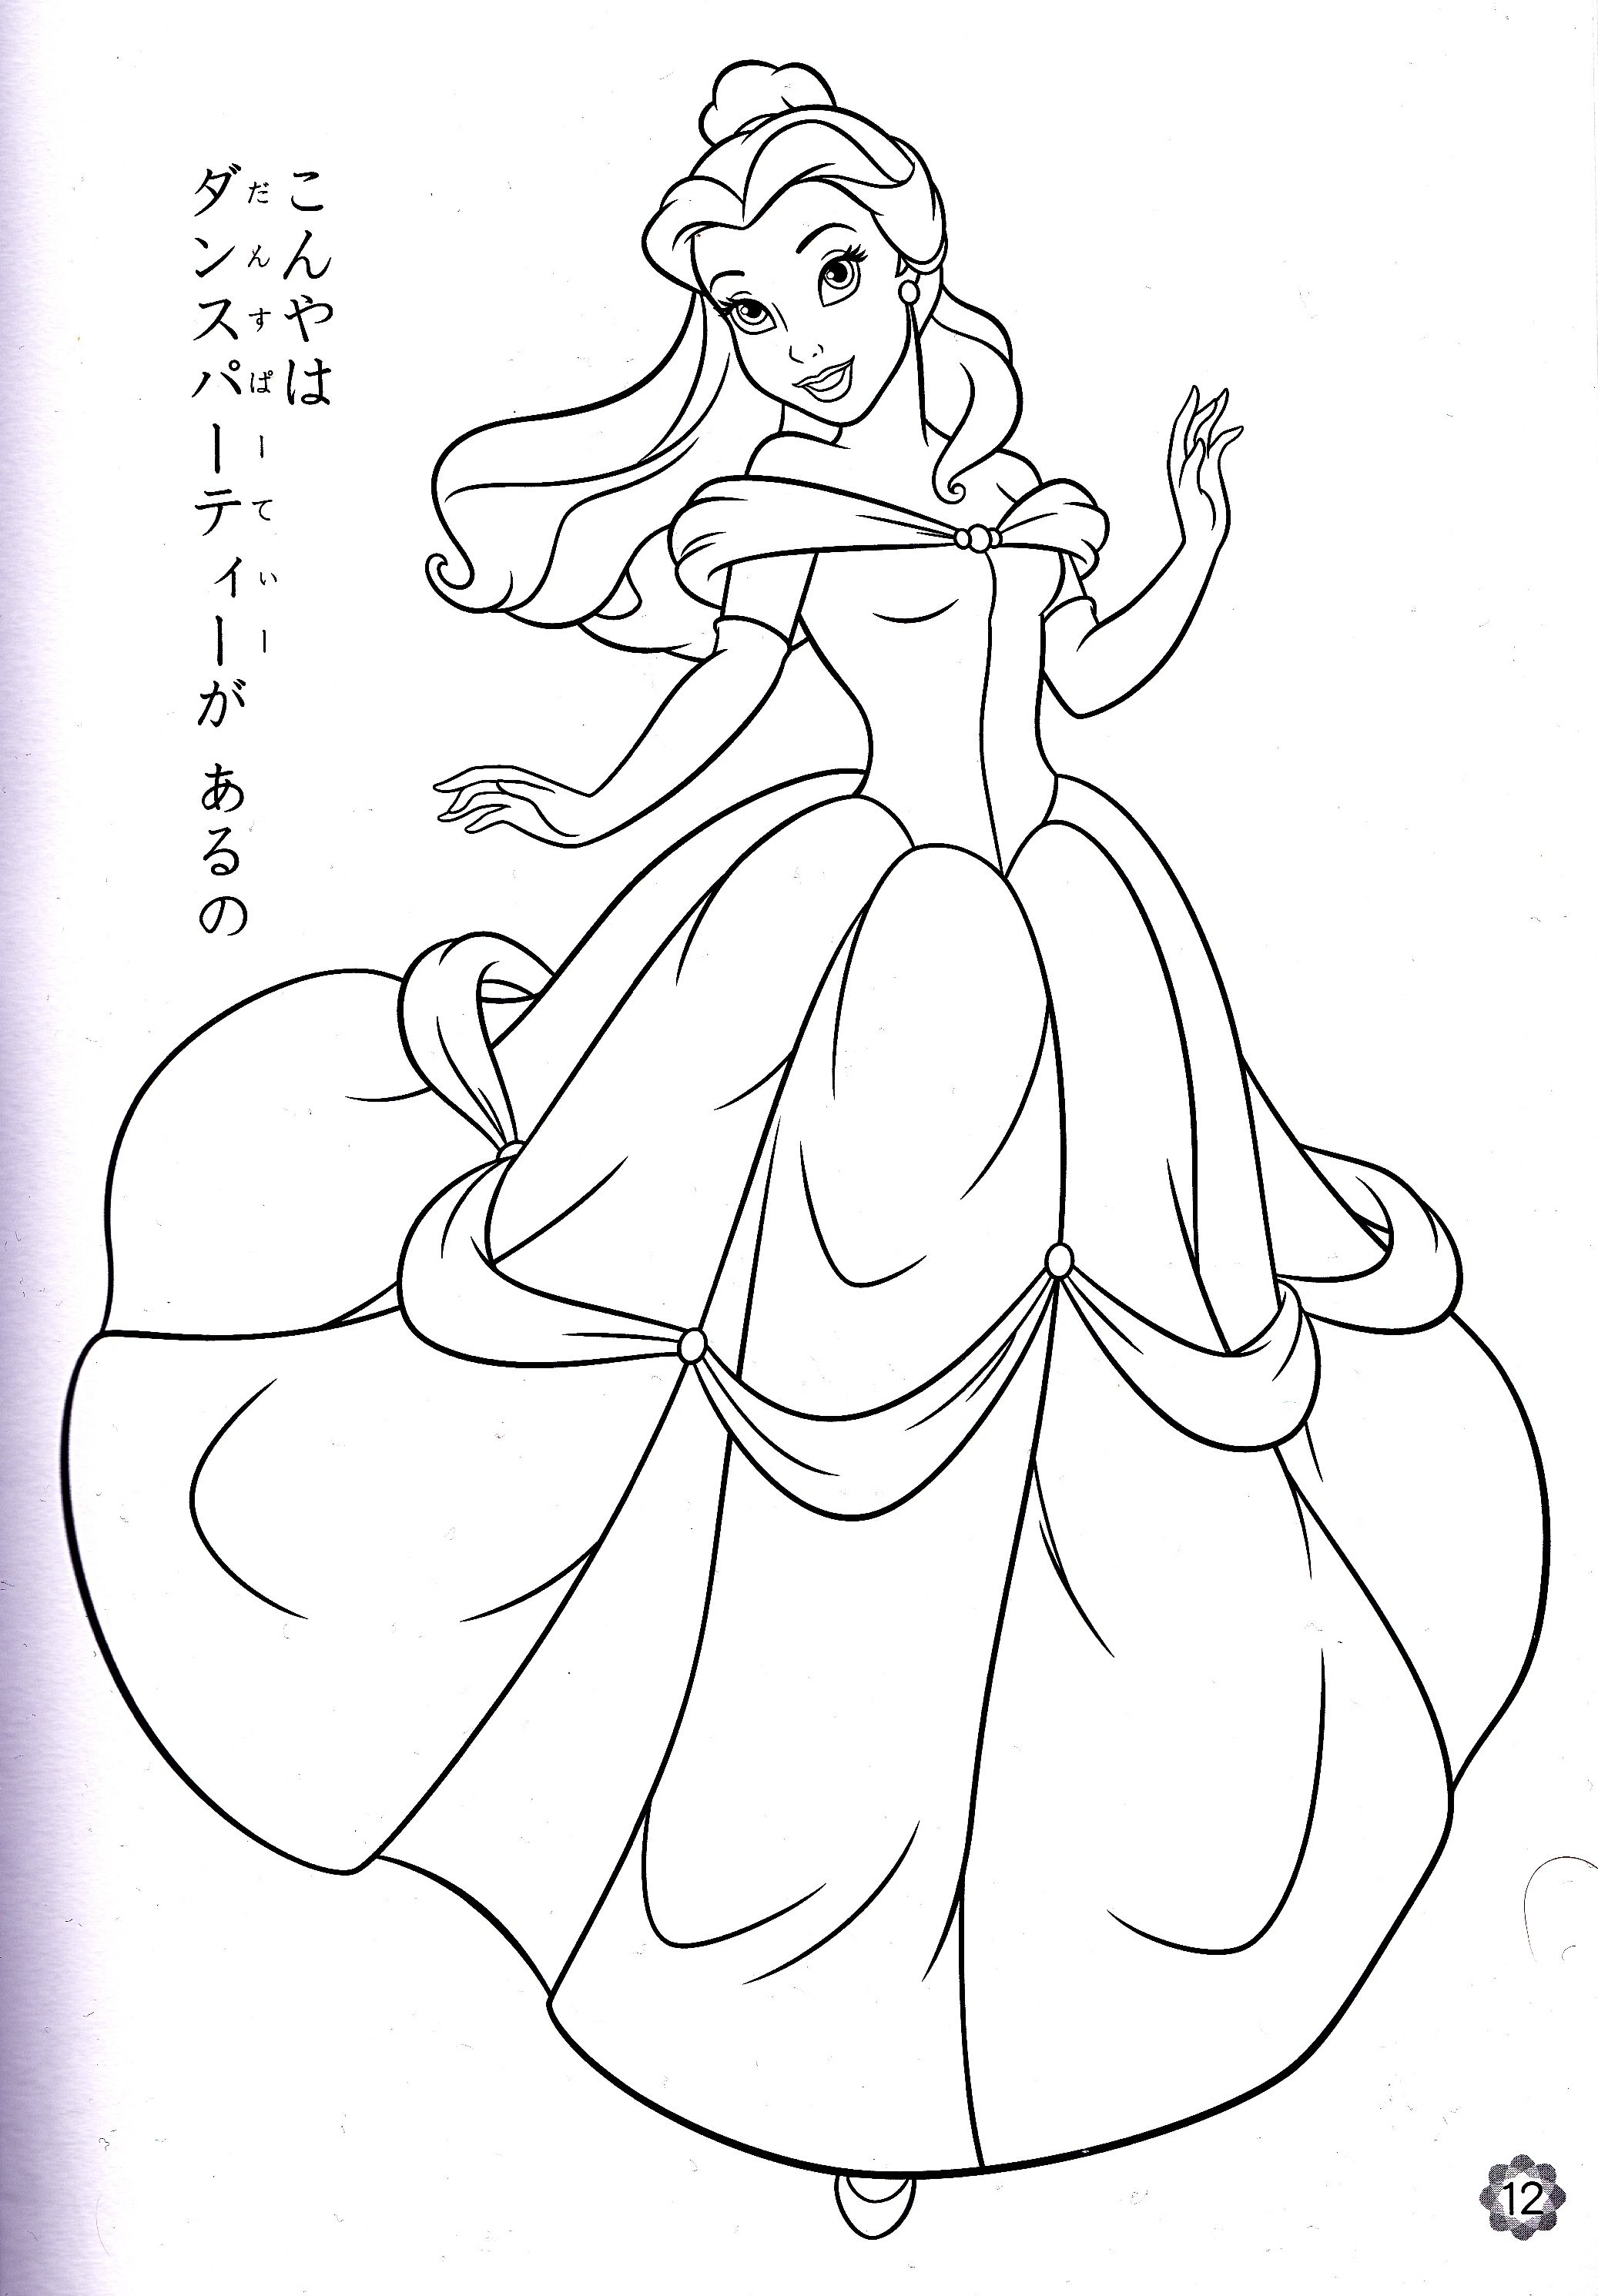 Princess Belle For Coloring Coloring Pages Allow Kids To Accompany Their Fav Disney Princess Coloring Pages Princess Coloring Pages Disney Princess Sketches